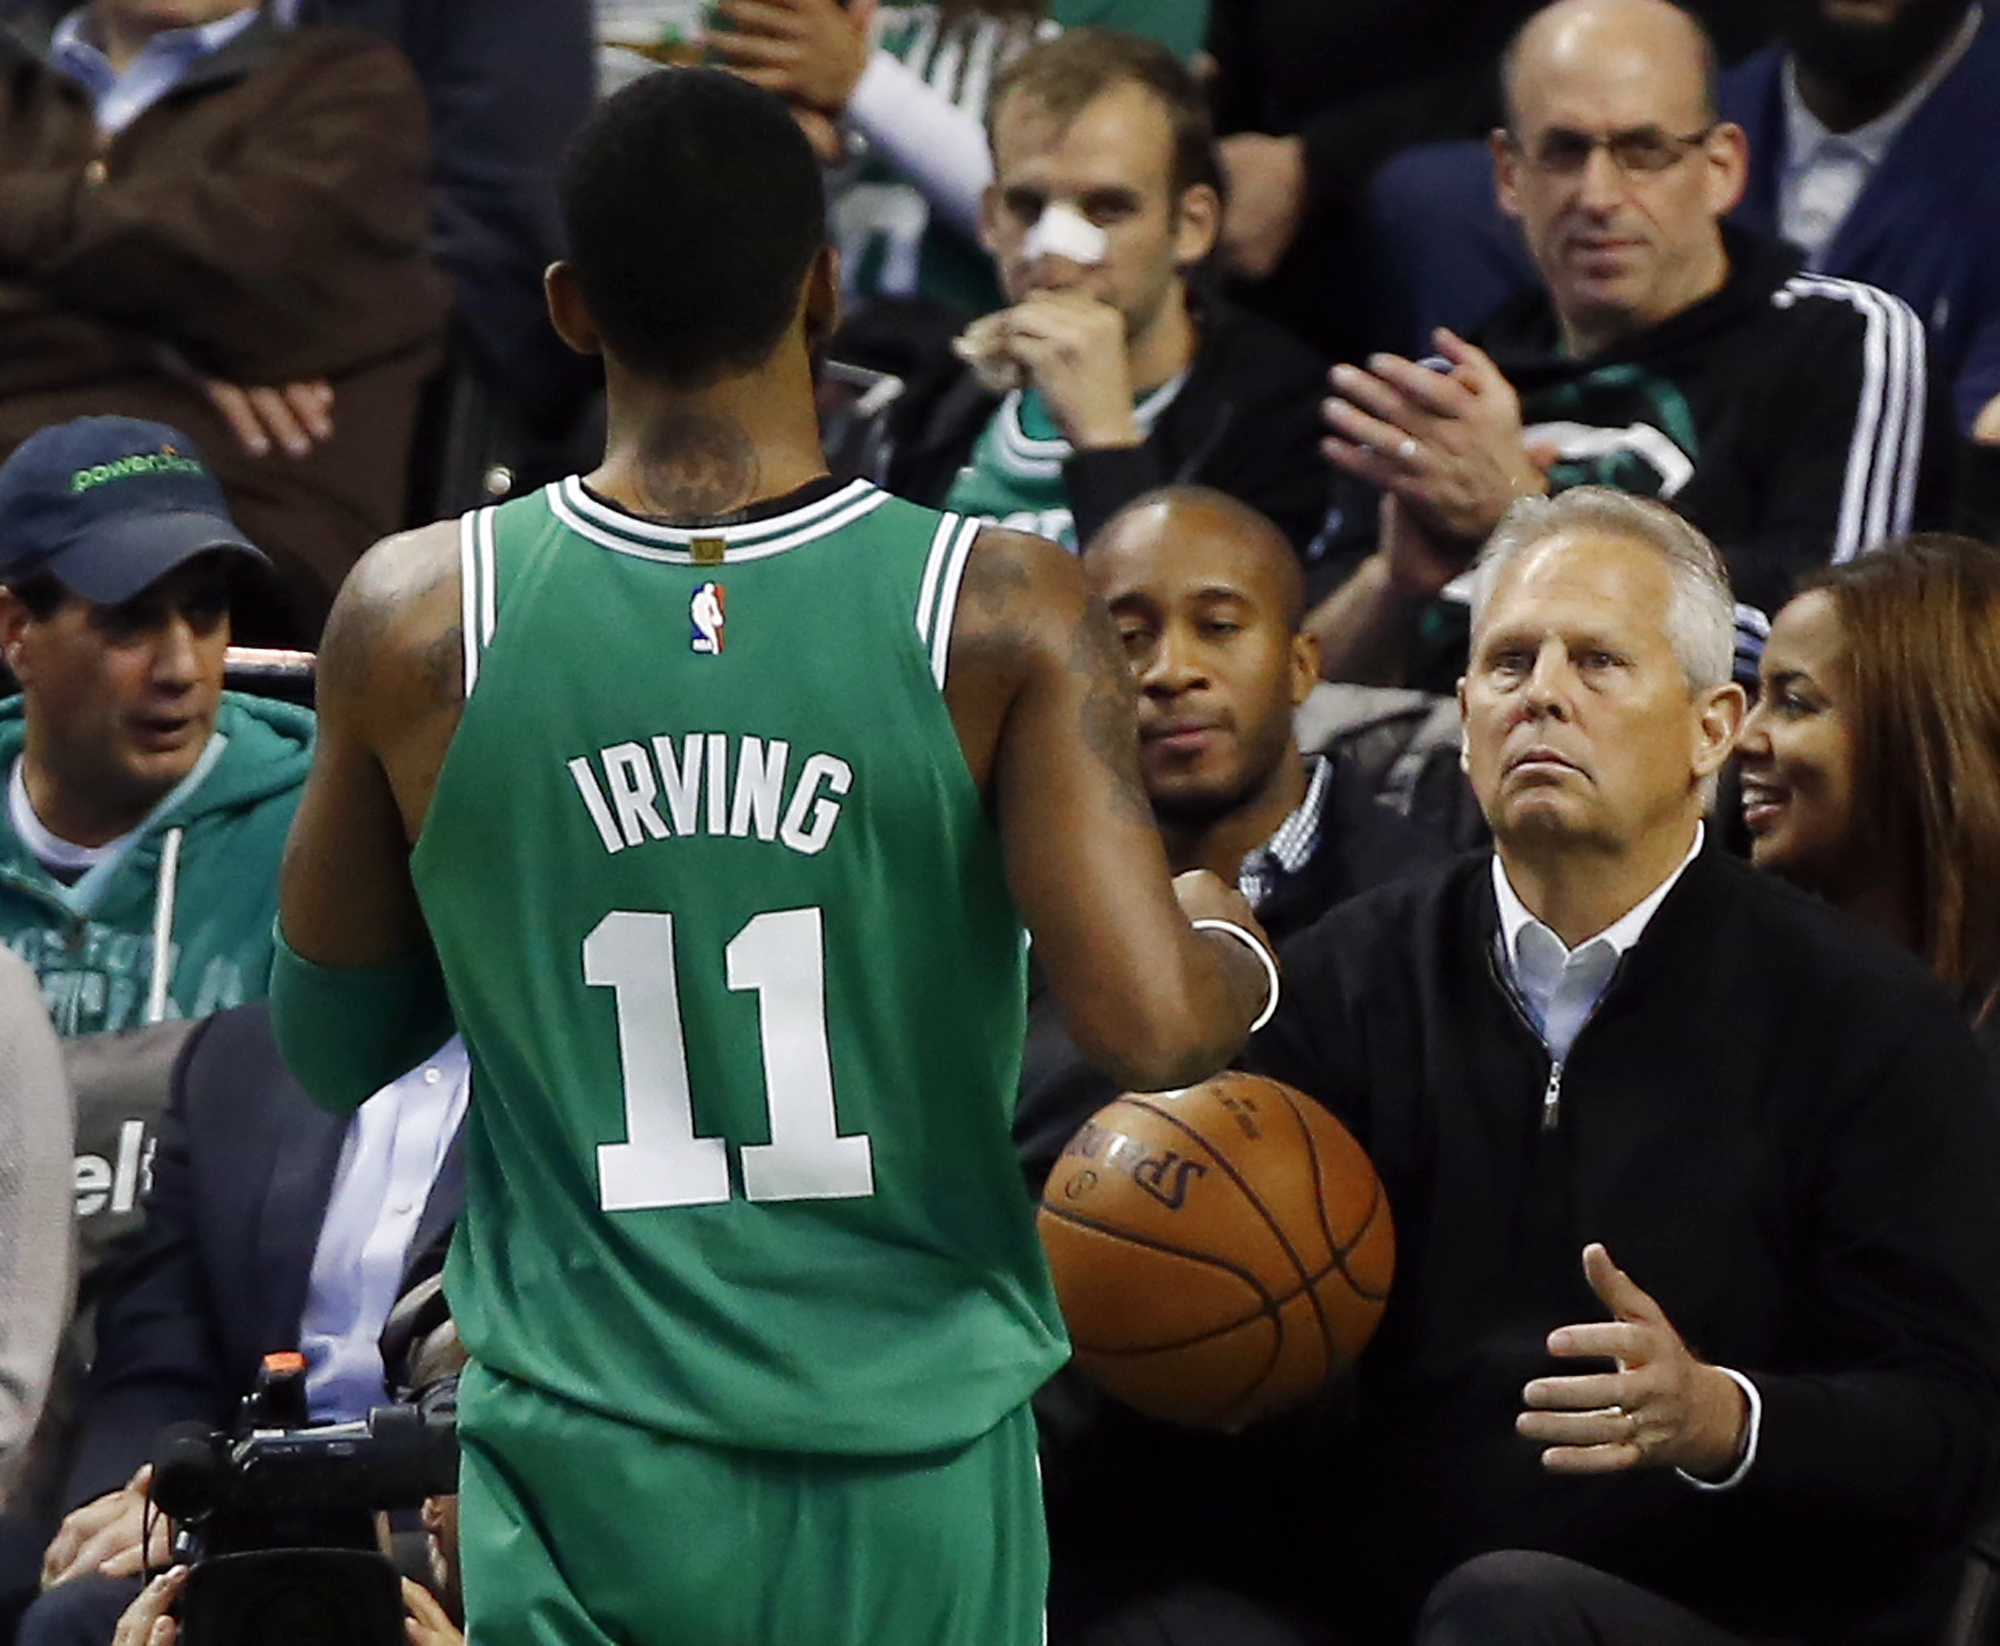 Danny Ainge forced to stay quiet as Boston Celtics roster unravels: 'I wish I could tell you everything I know, but I can't'